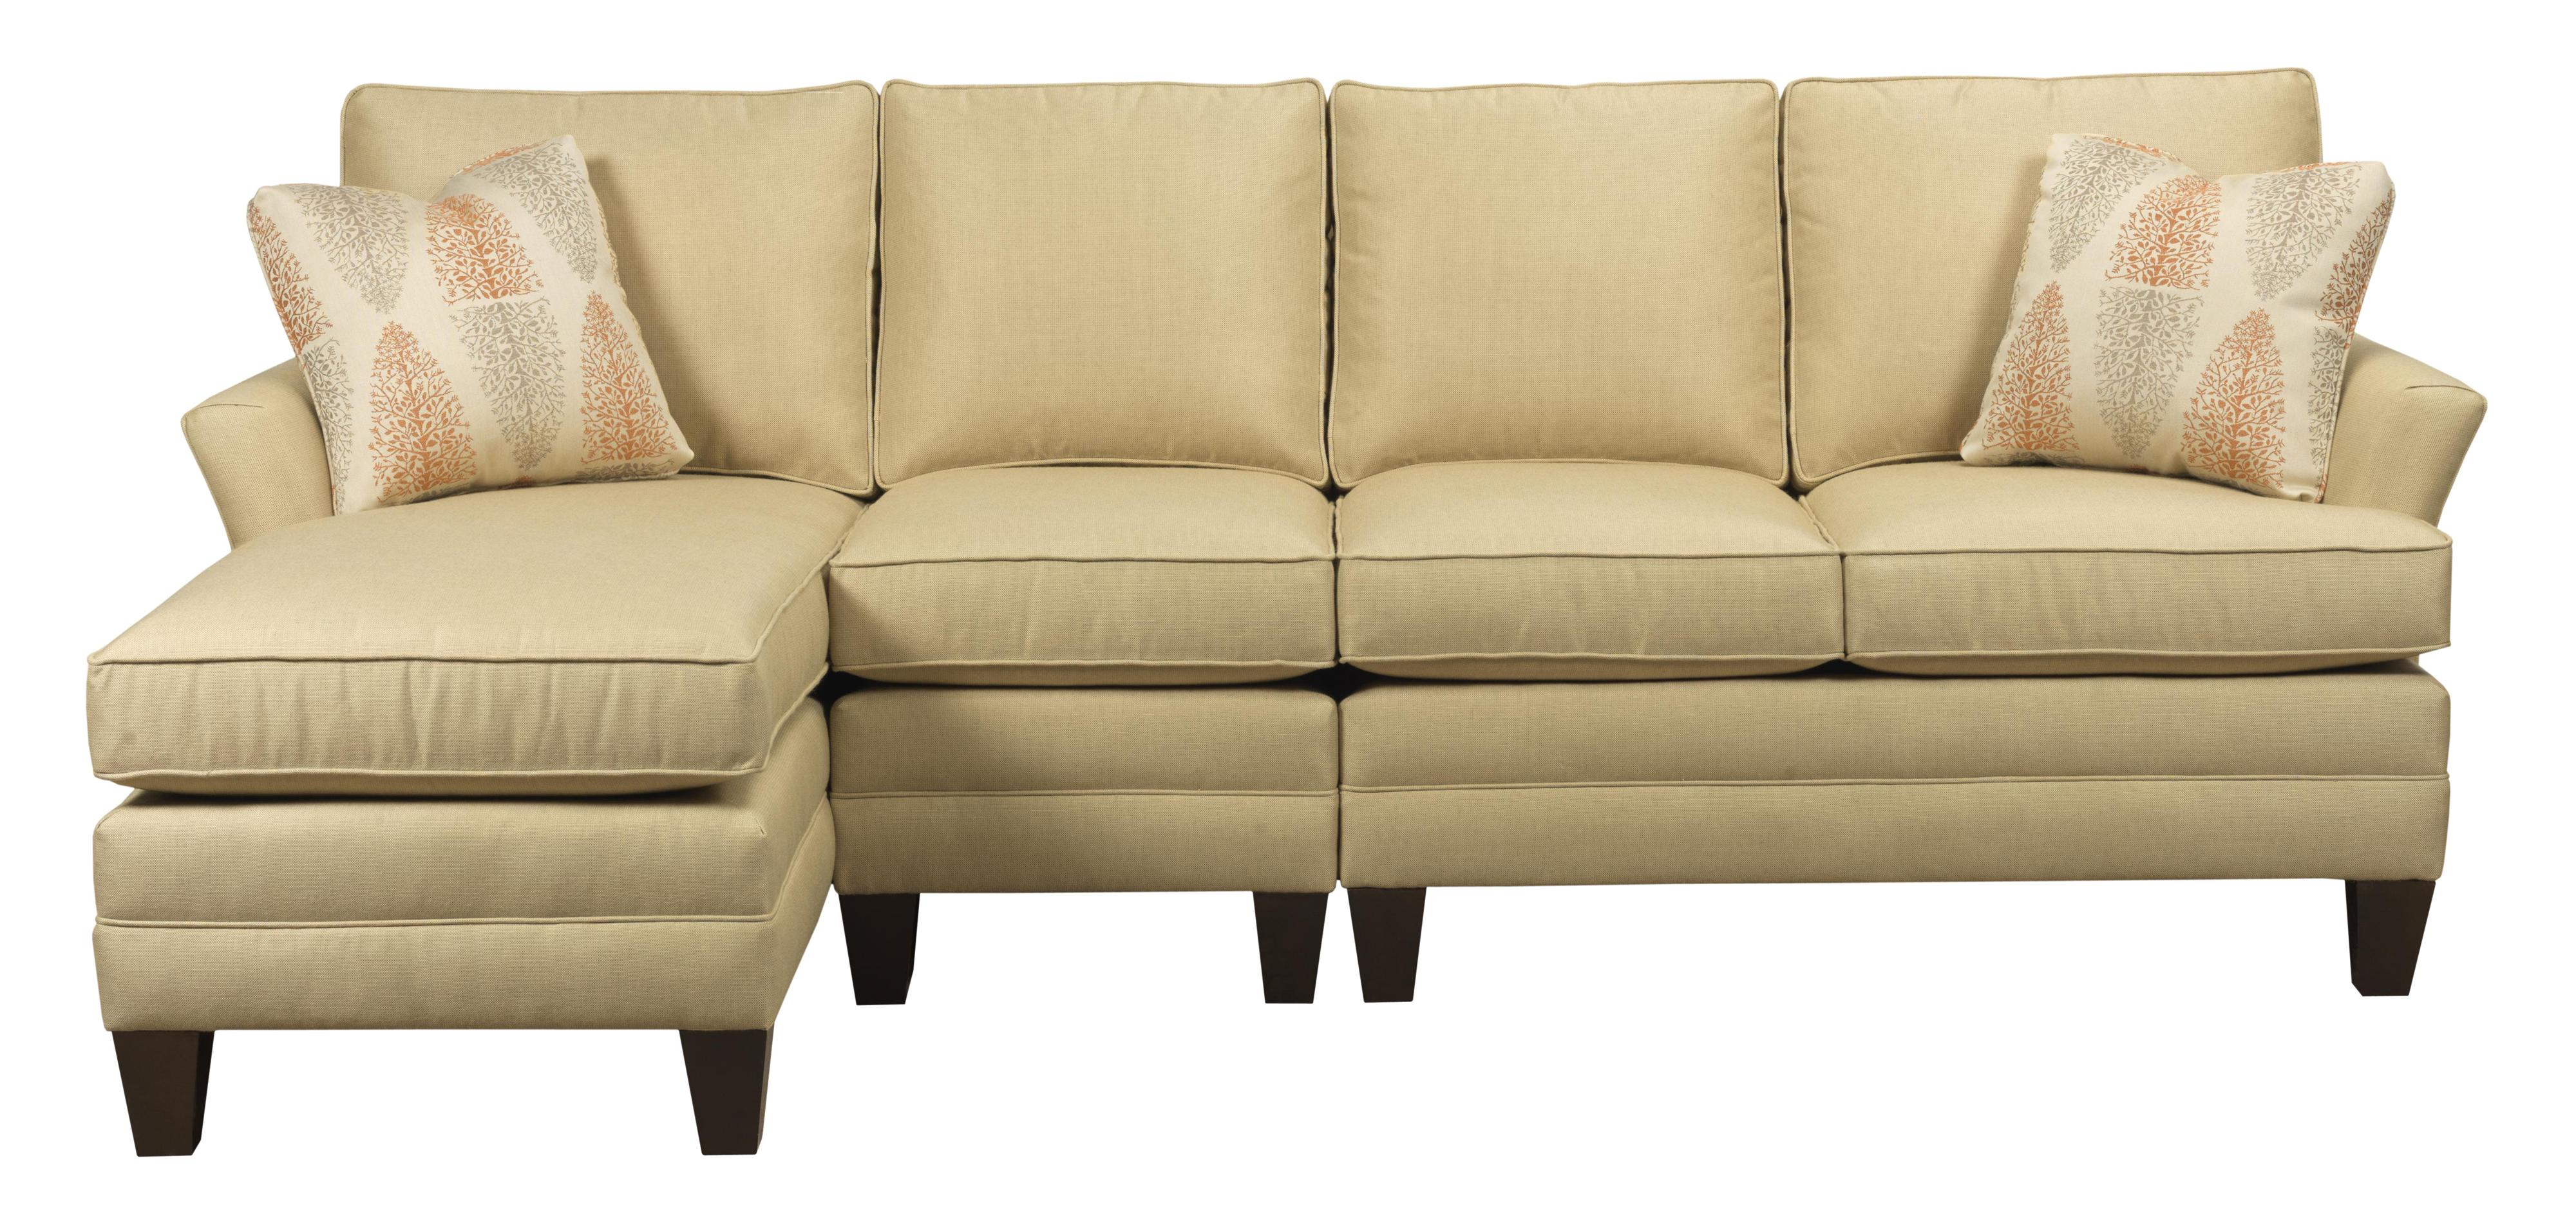 Custom 3 Pc Sectional w/ RAF Chaise